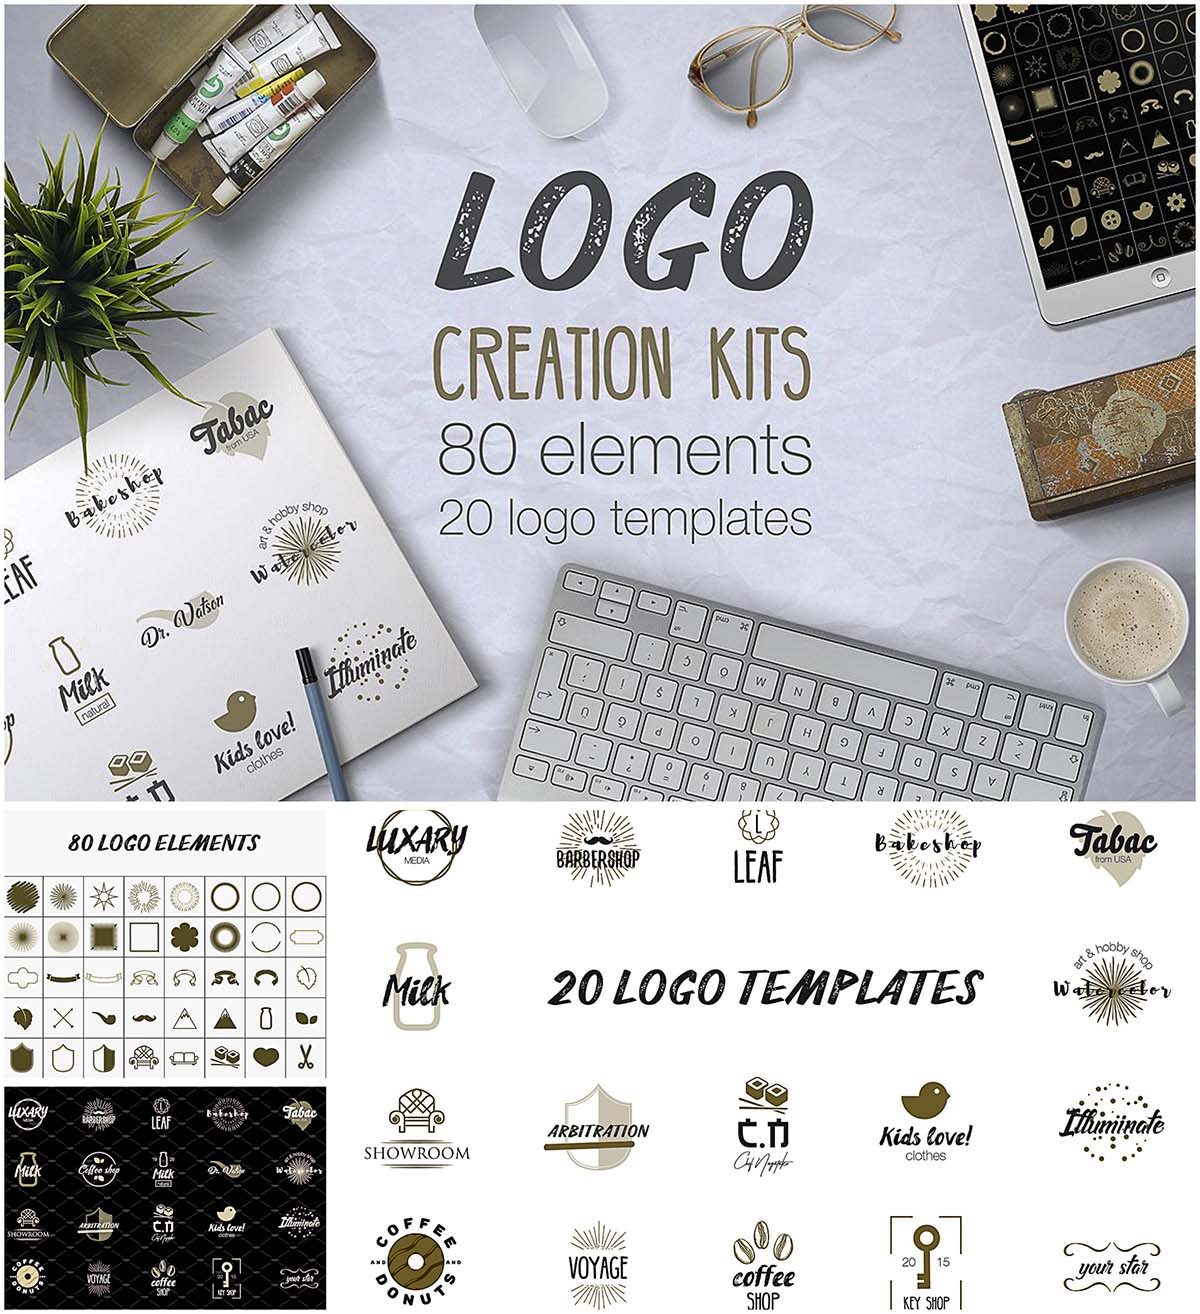 Logo elements and templates